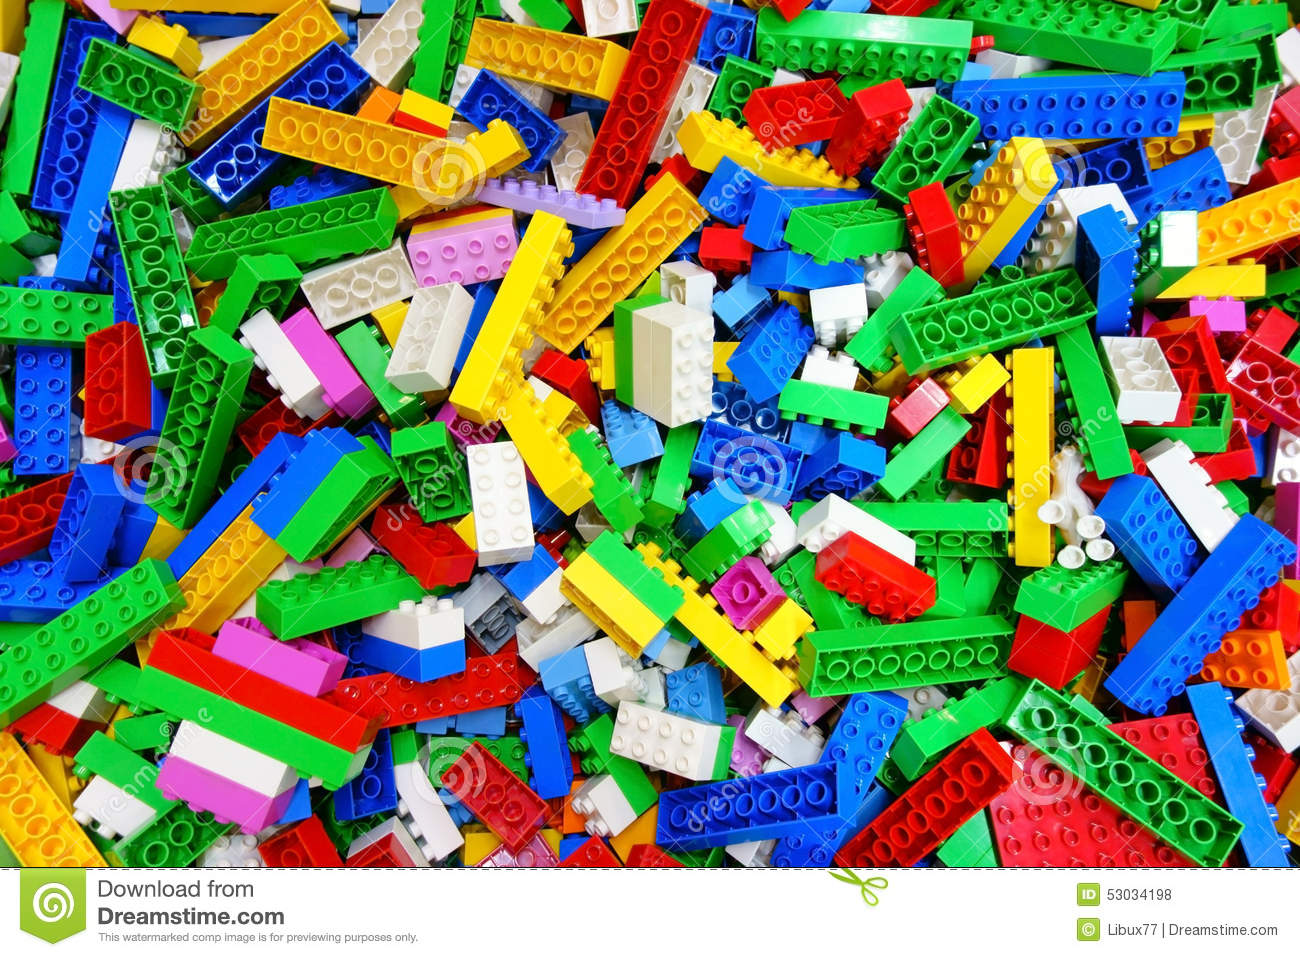 Download Heap Messy Toy Multicolor Lego Building Bricks Stock Photo - Image of cube, colorful: 53034198